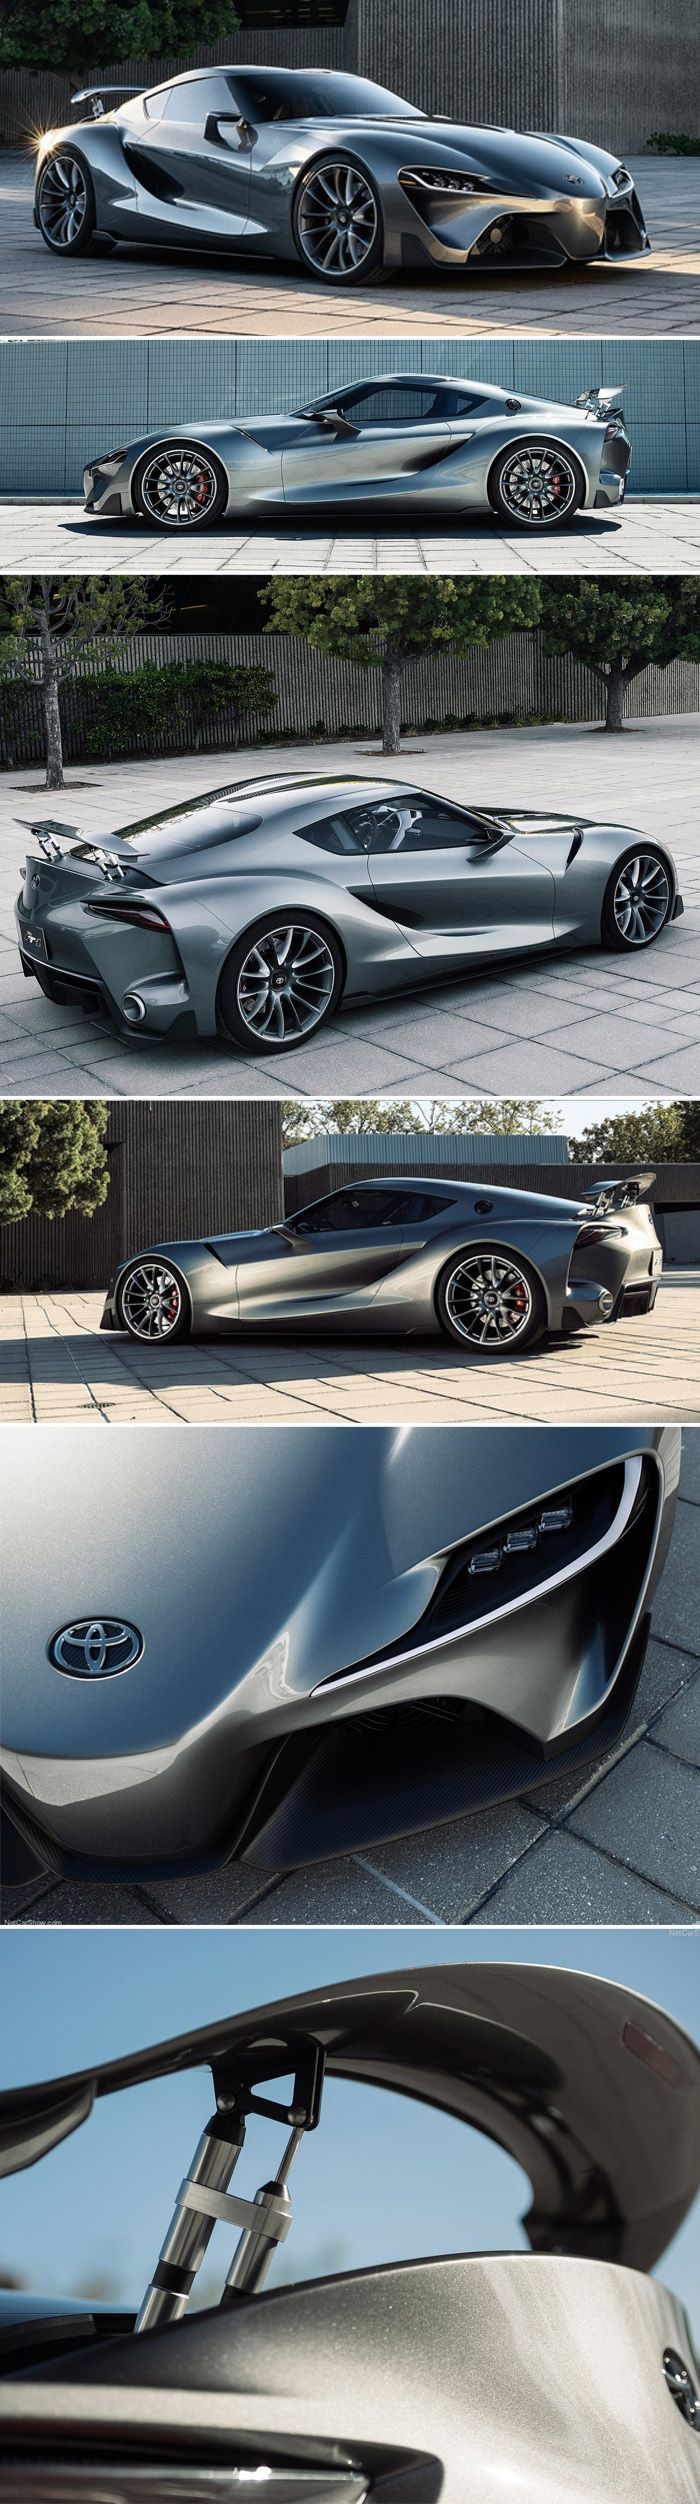 Best Images About Toyota On Pinterest Toyota Cars Toyota